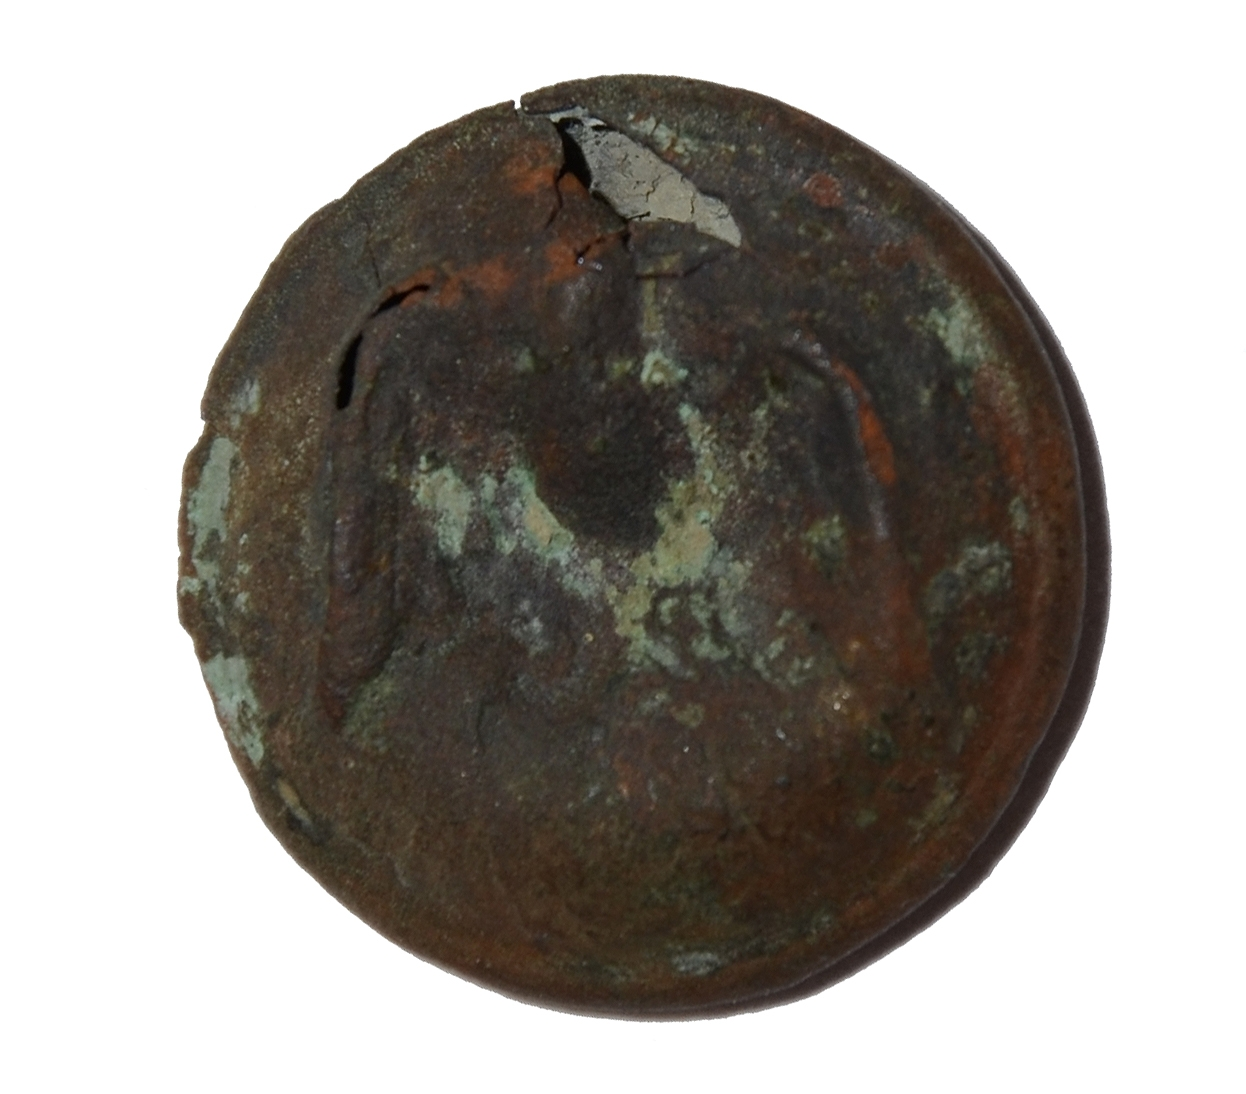 CONFEDERATE STAFF OFFICER'S BUTTON FROM GETTYSBURG